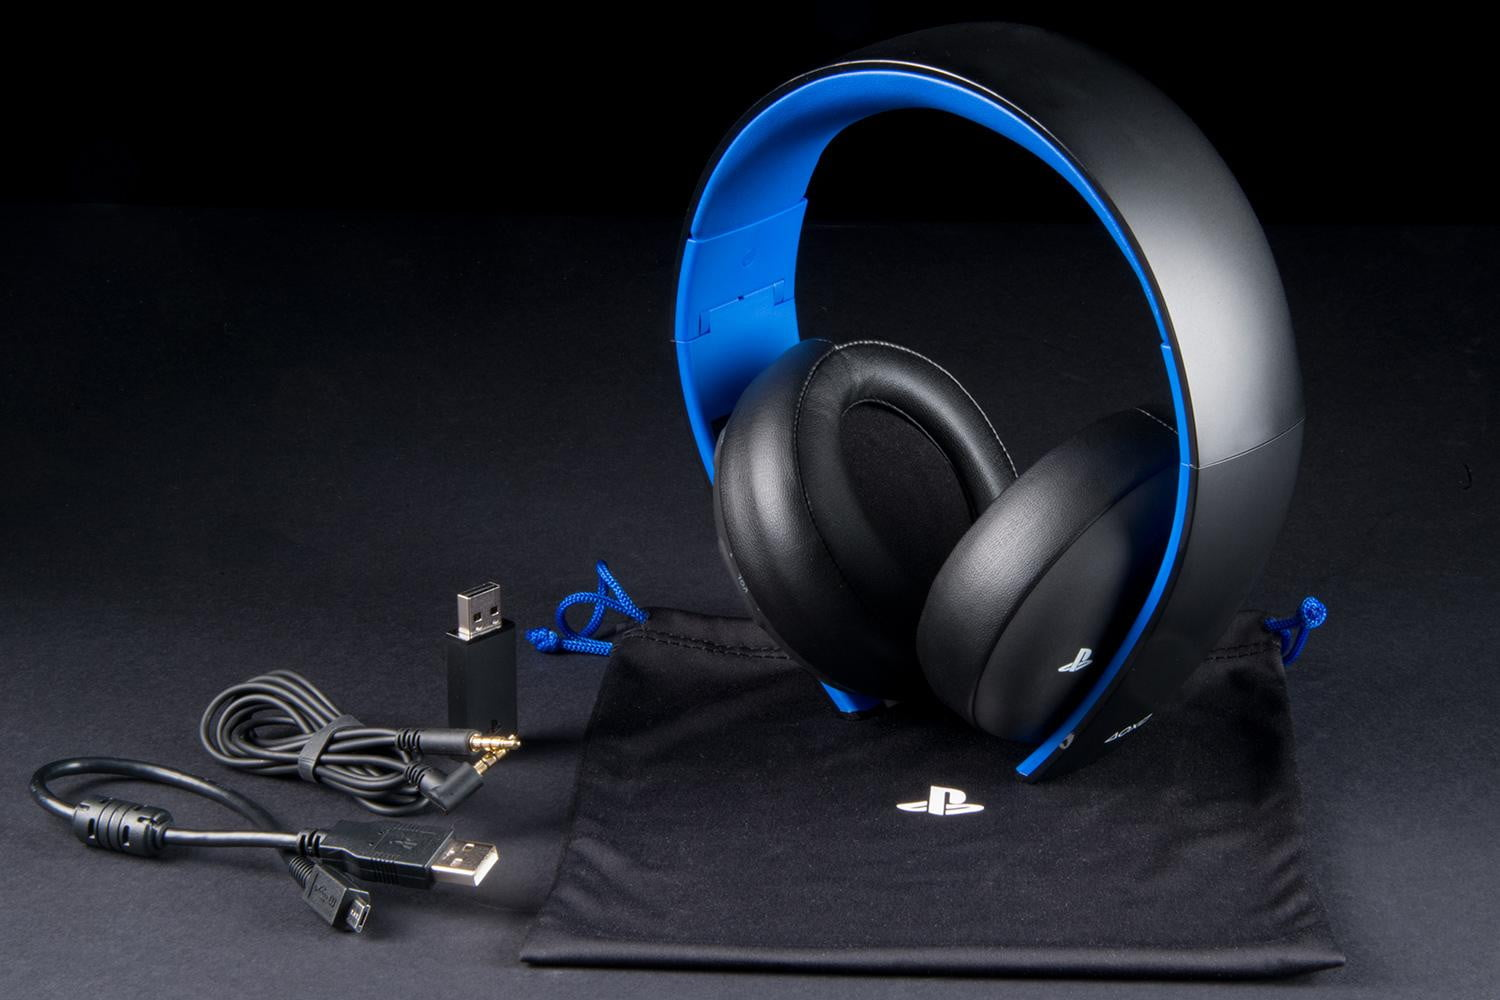 sony playstation gold review digital trends sony playstation 3 wireless headset manual sony playstation wireless headset manual